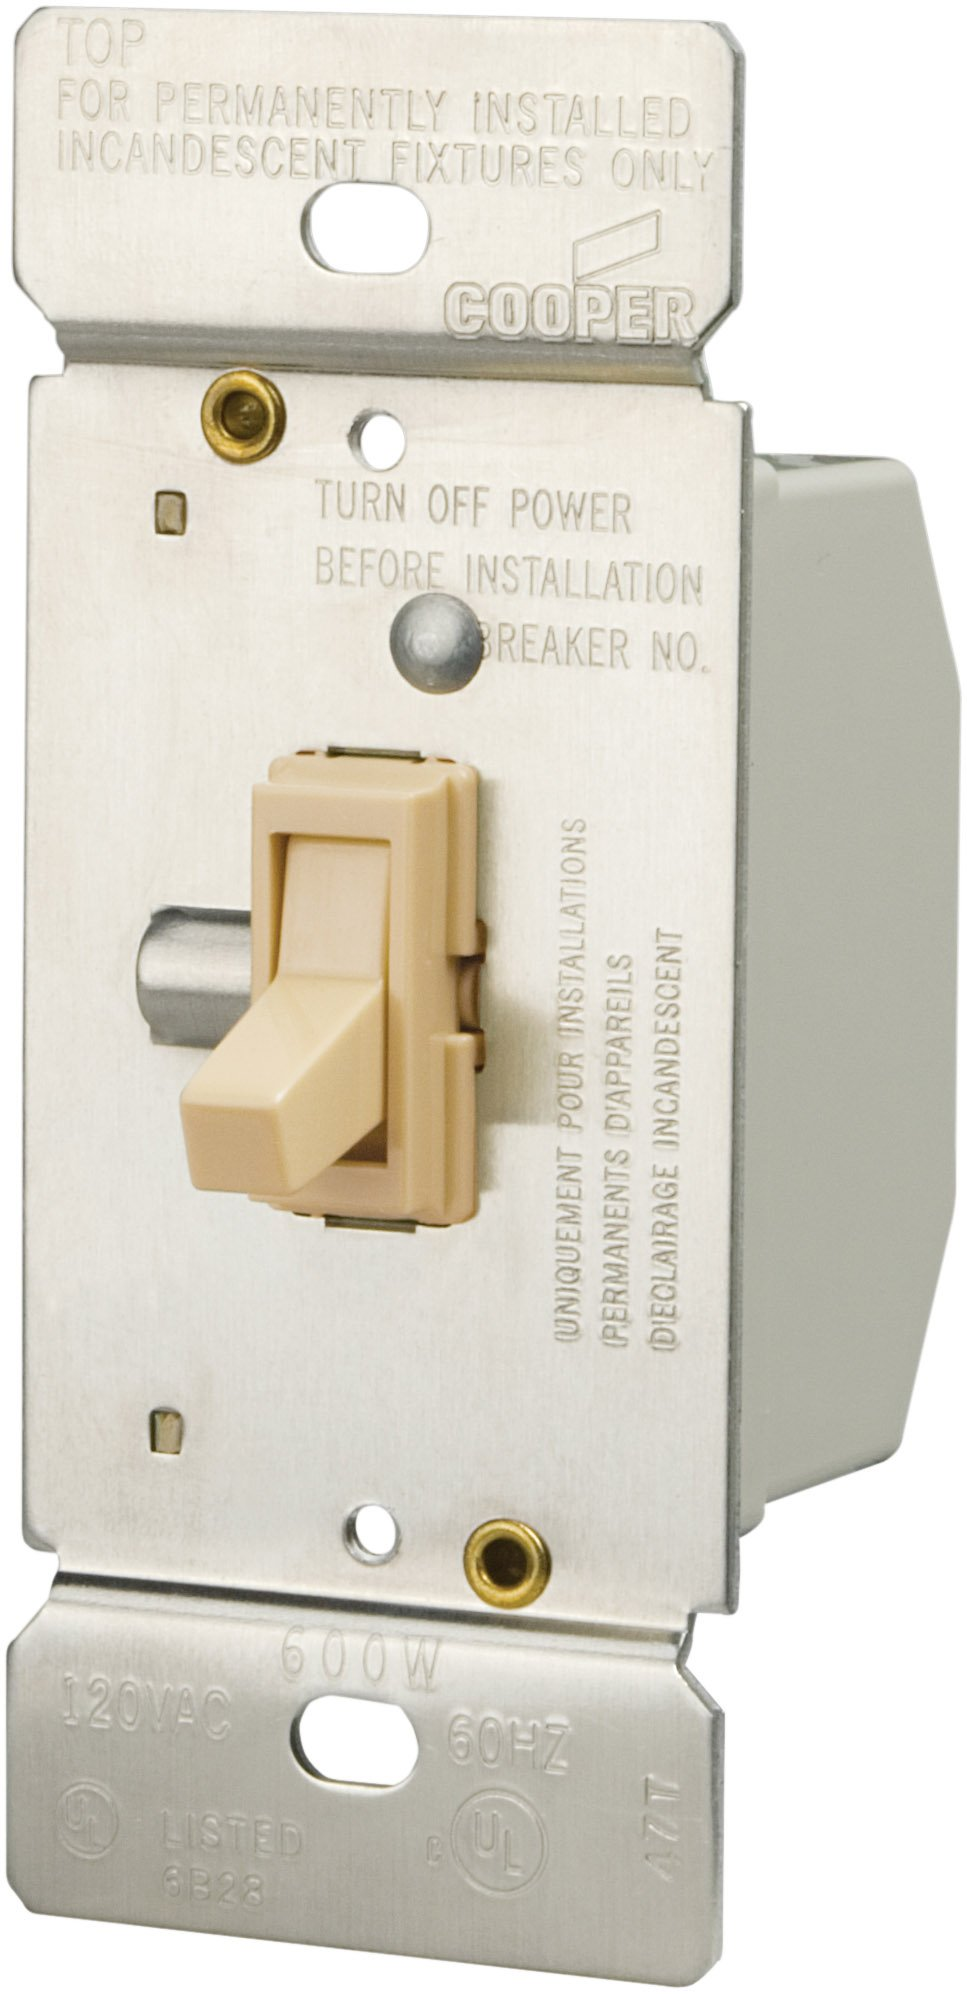 Eaton TI306-V-K 600-Watt 120-Volt Single-Pole/3-way Lighted Incandescent/Halogen Toggle Dimmer with Non-Preset ,Ivory